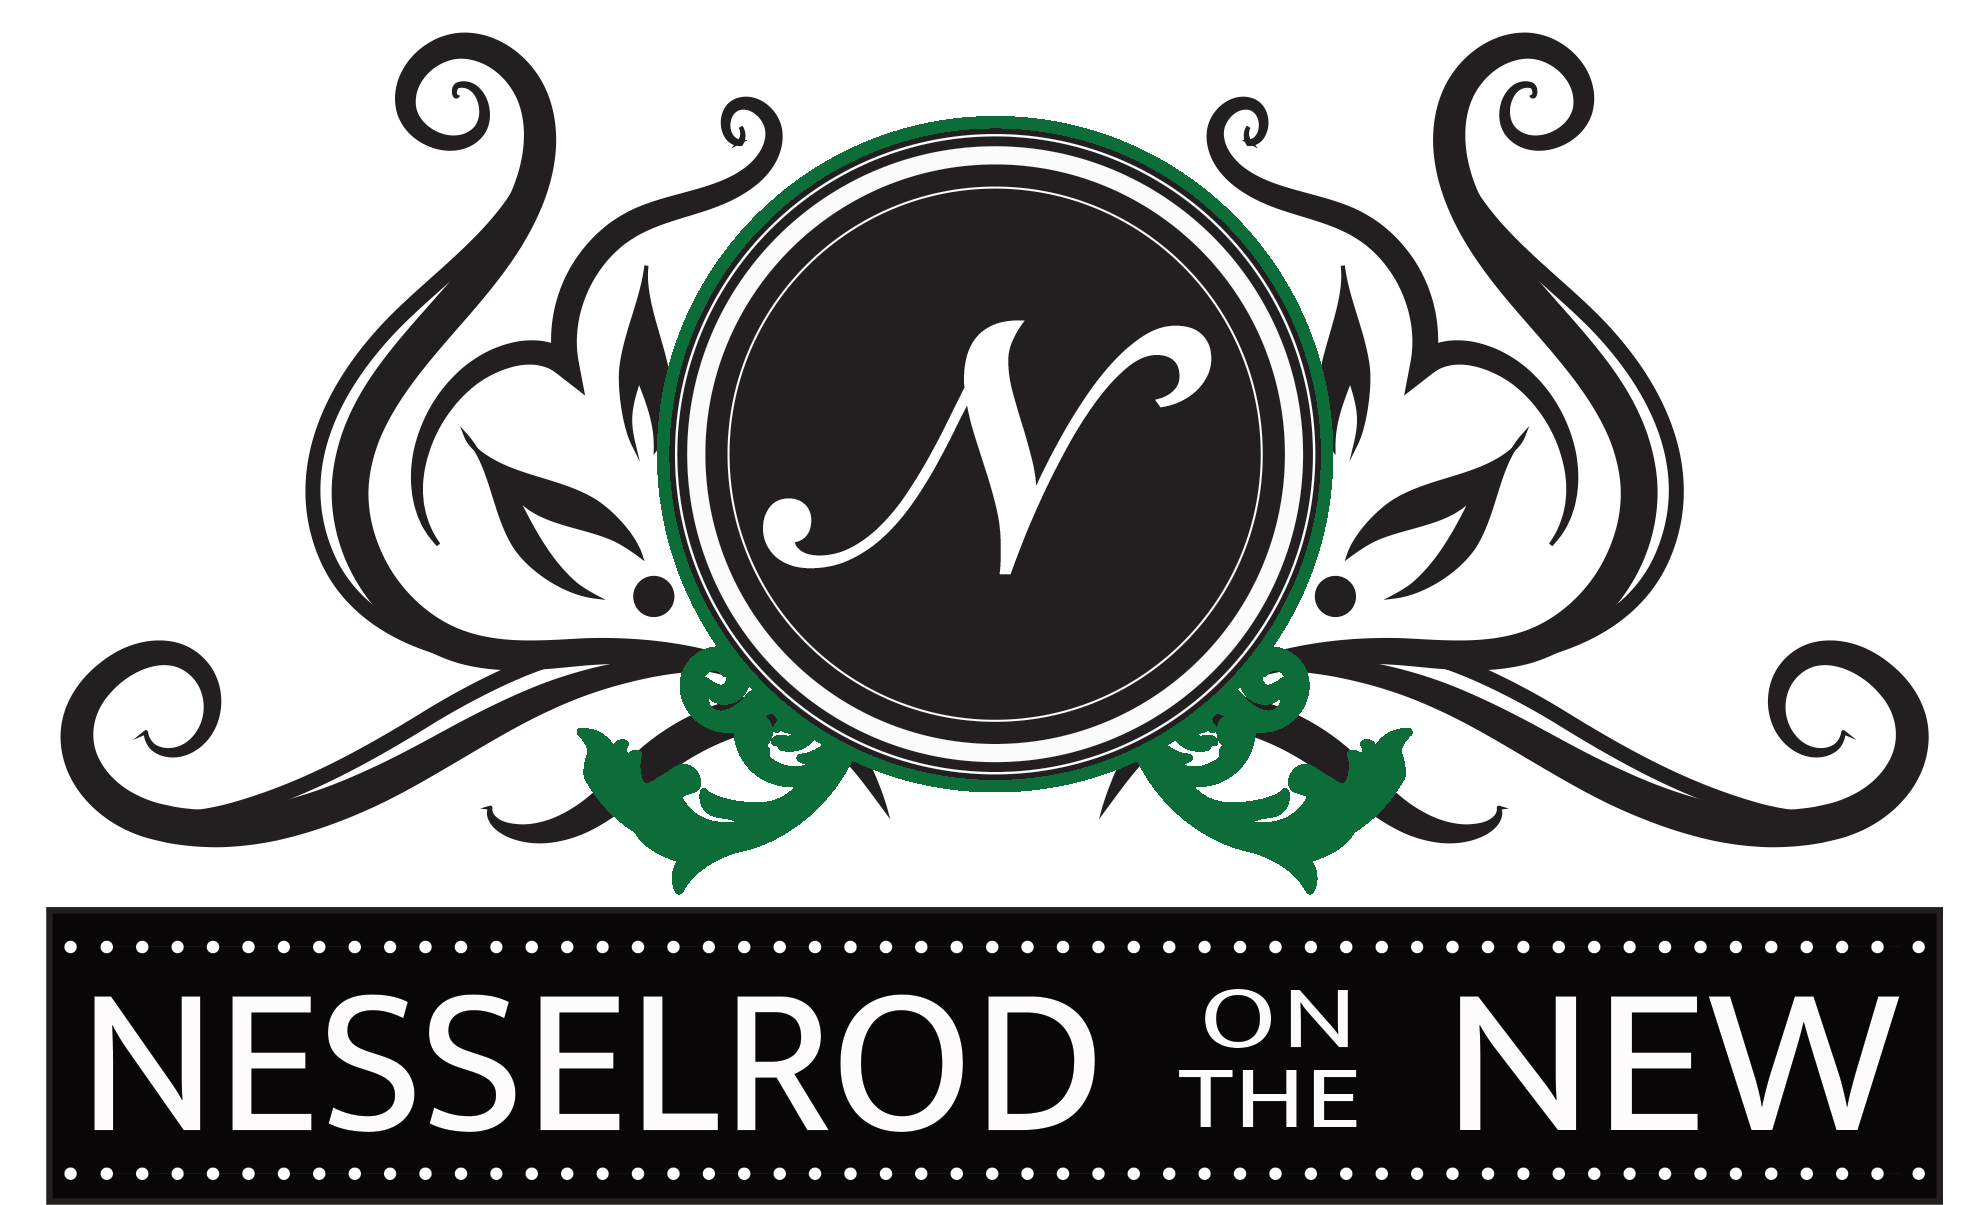 Nesselrod on the New